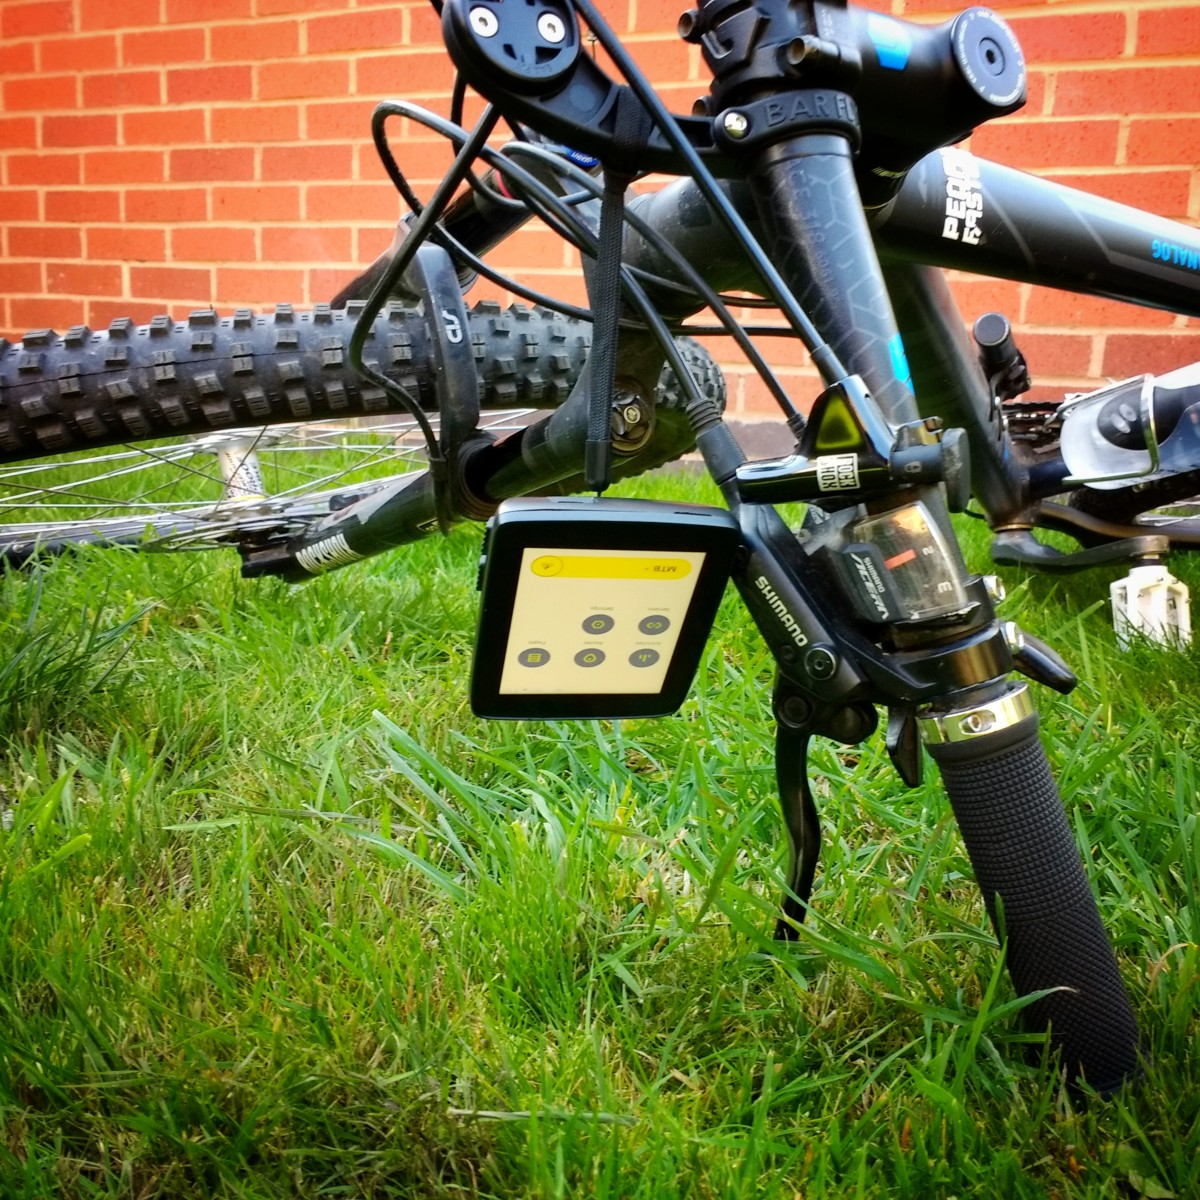 TitaniumGeek IMG 20181010 141220930 01 Hammerhead Karoo GPS Review   Android on your bike Cycling Cycling Computers and GPS Units Gear Reviews  Karoo GPS cycling Bike computer android   Image of IMG 20181010 141220930 01